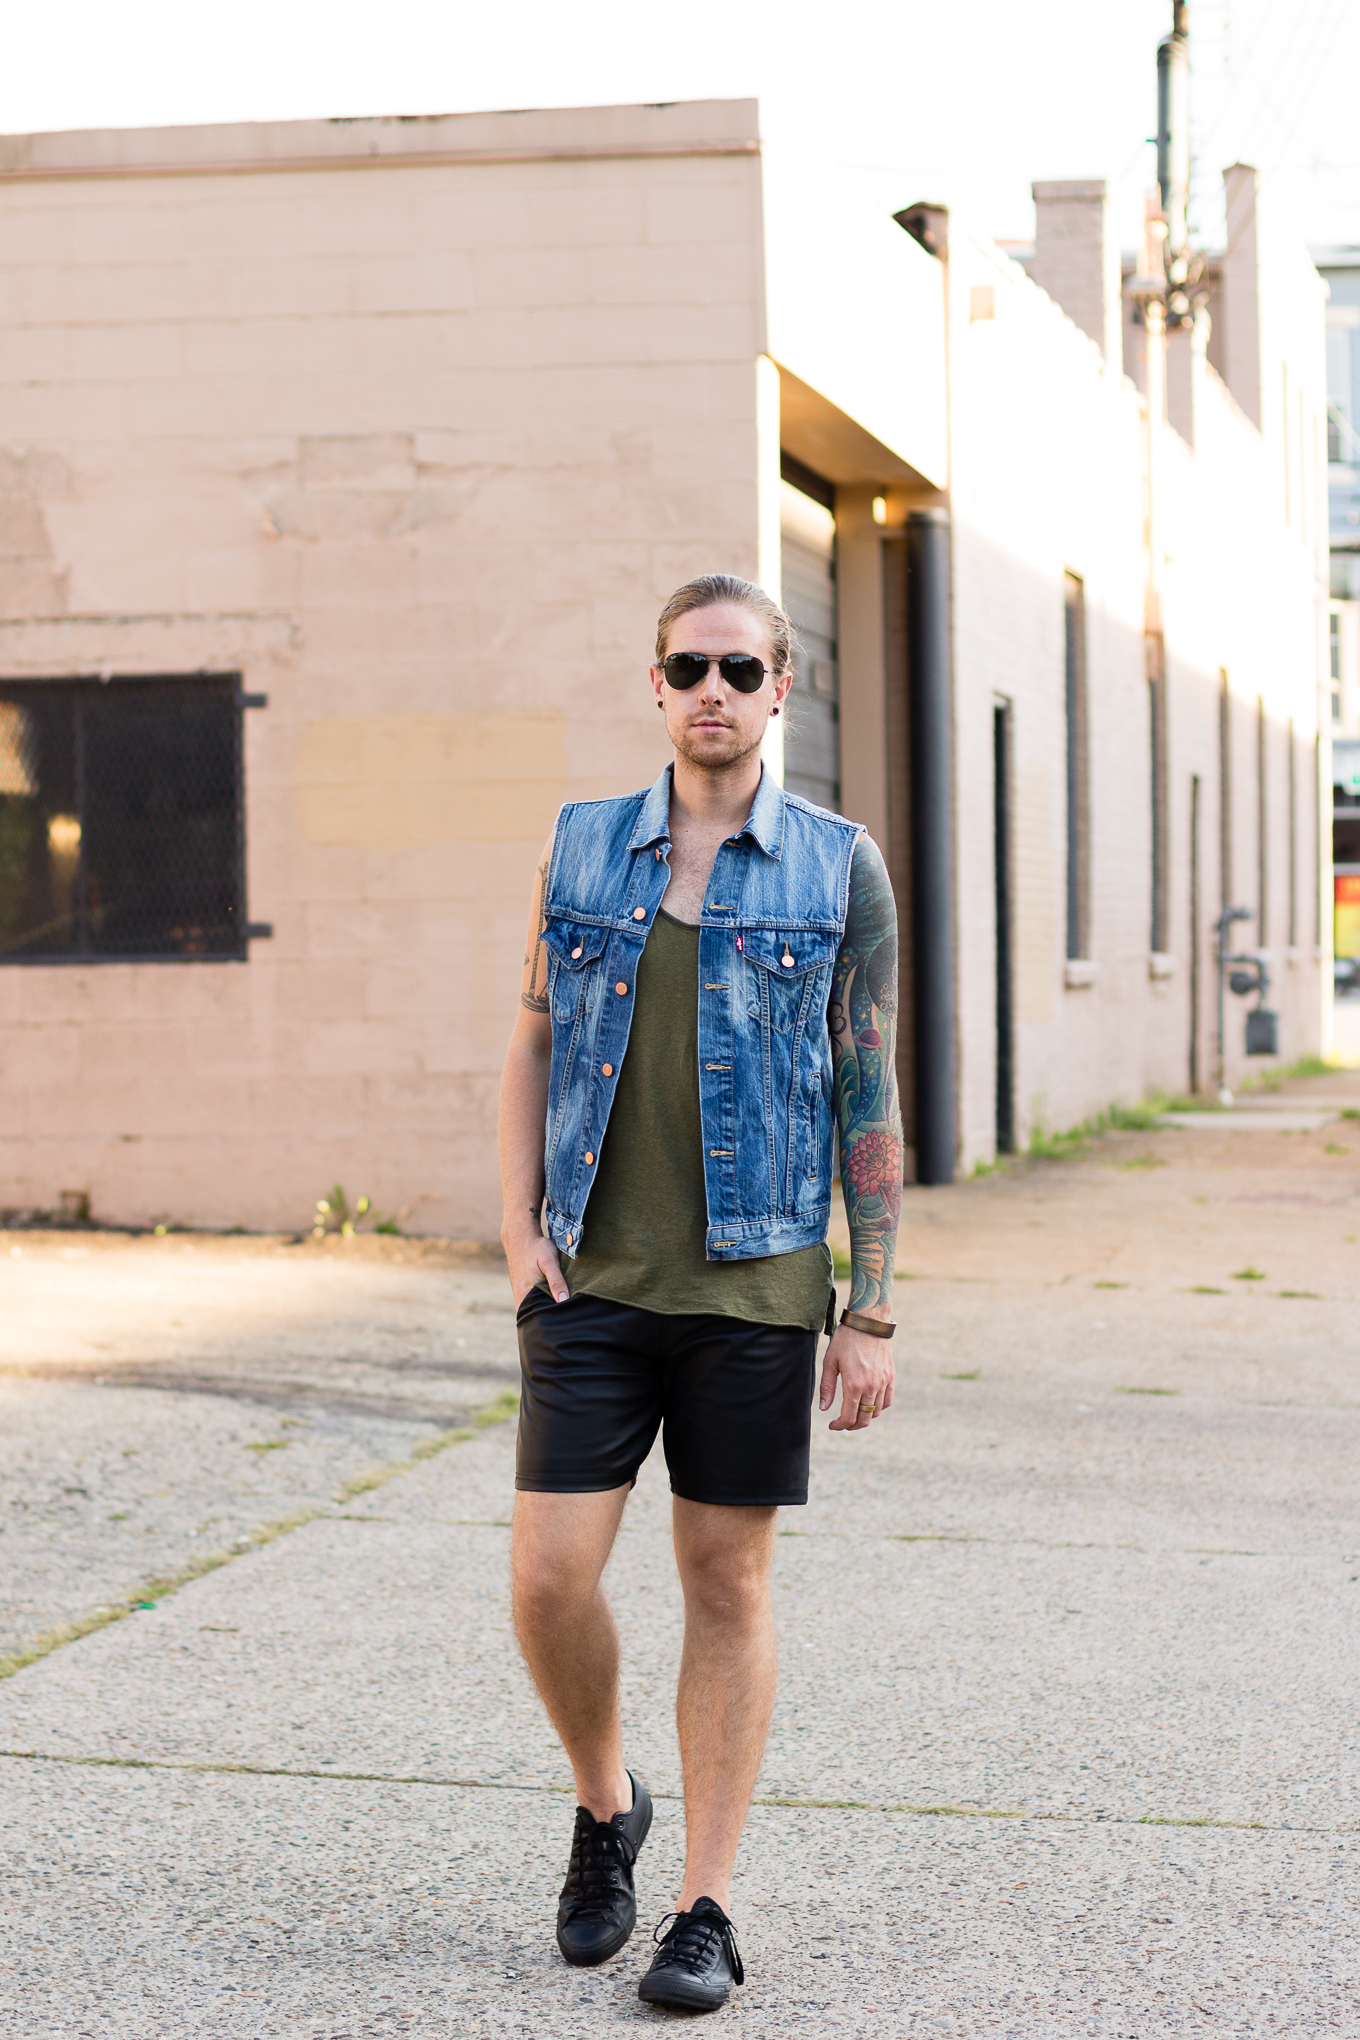 levis denim vest, topman faux leather shorts, converse sneakers, ray-ban aviators, mens fashion blog